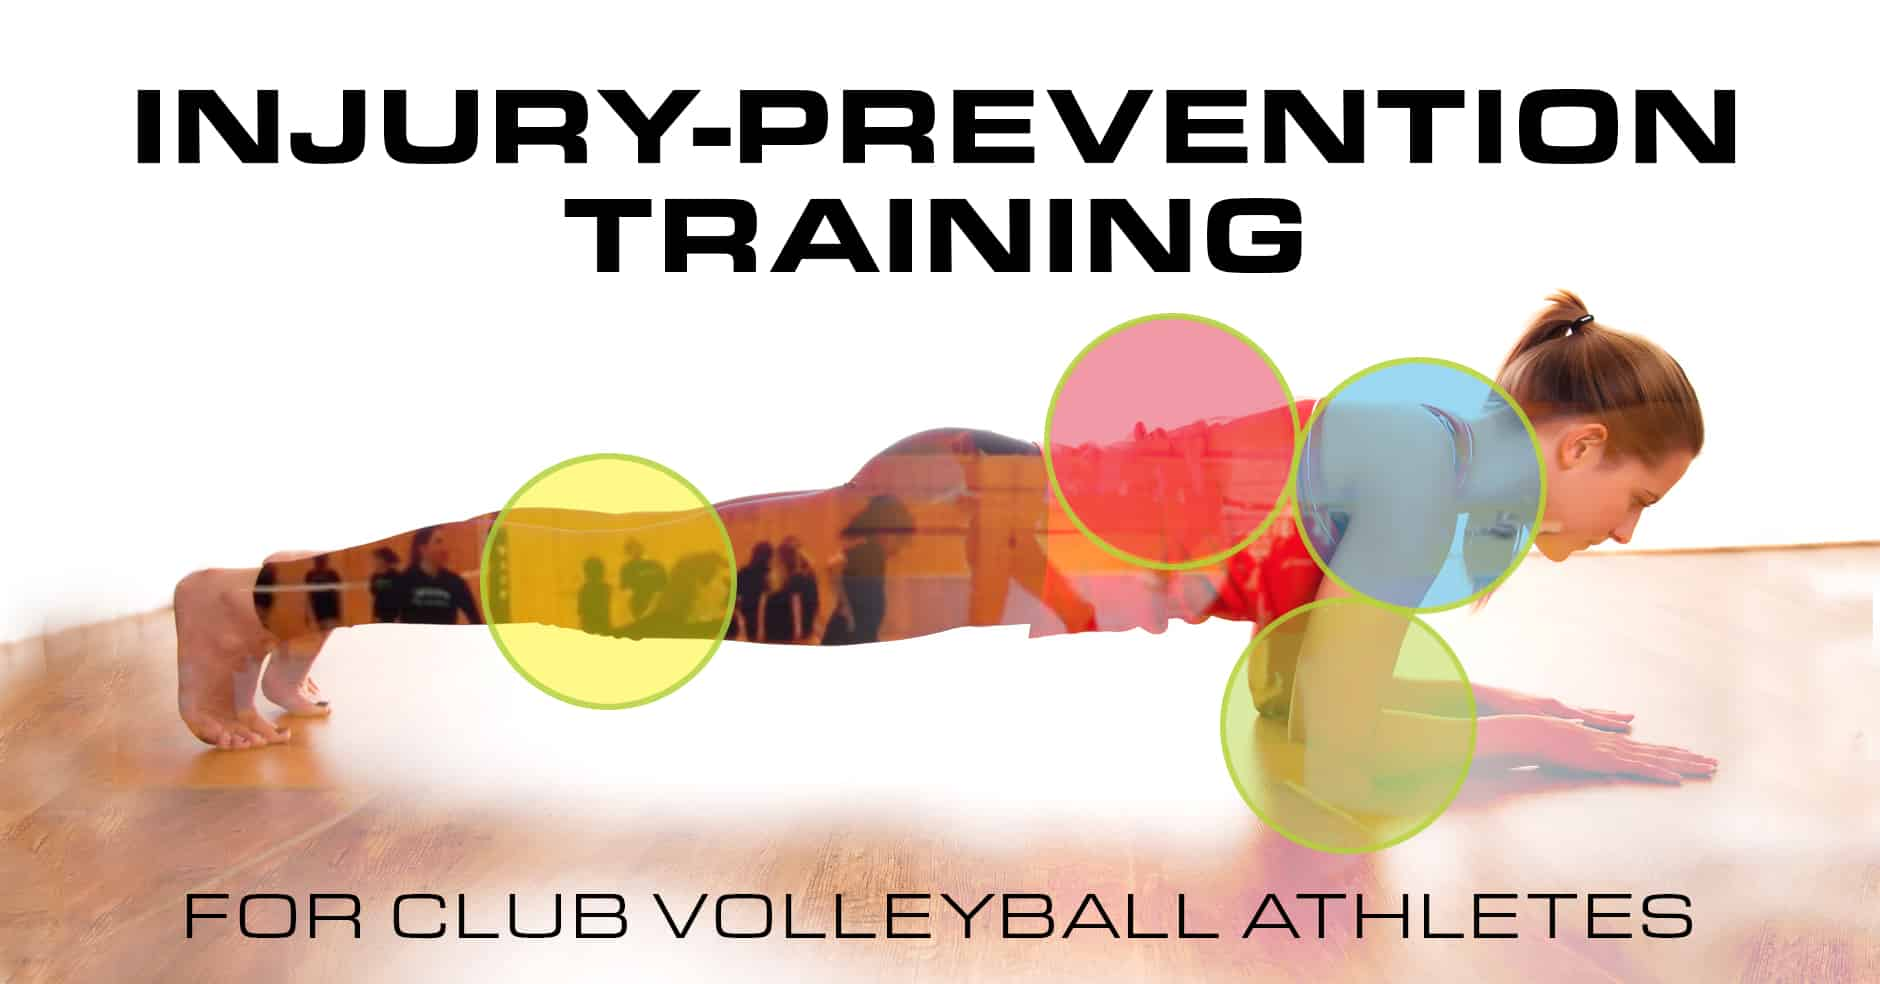 Injury Prevention Training For Club Volleyball Athletes